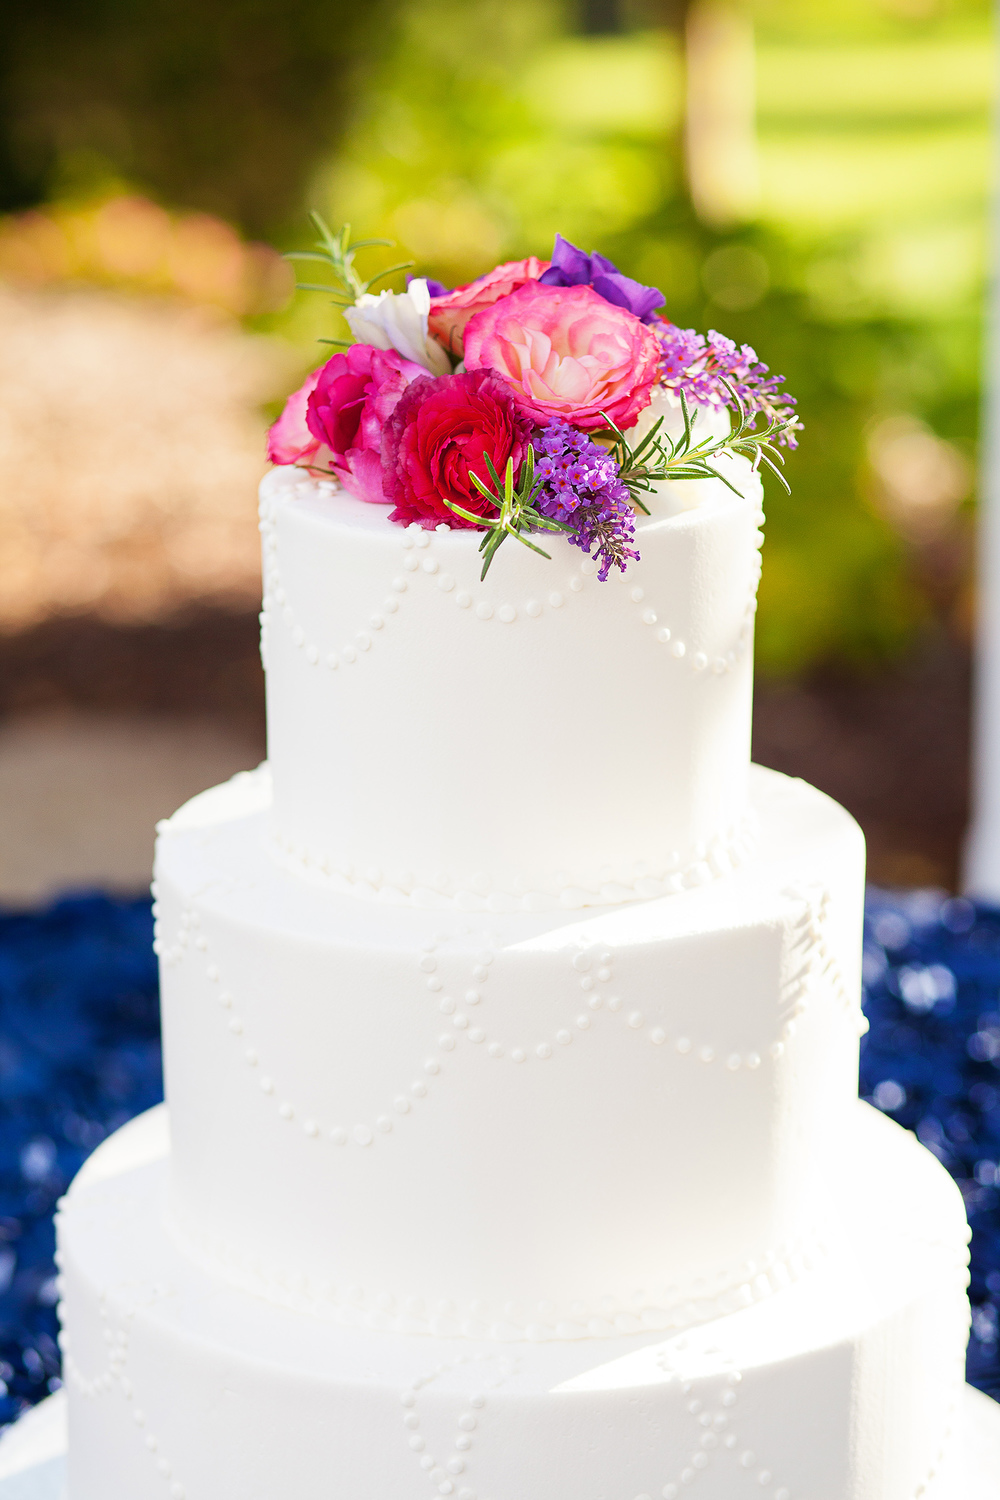 White Wedding Cake with Colorful Florals